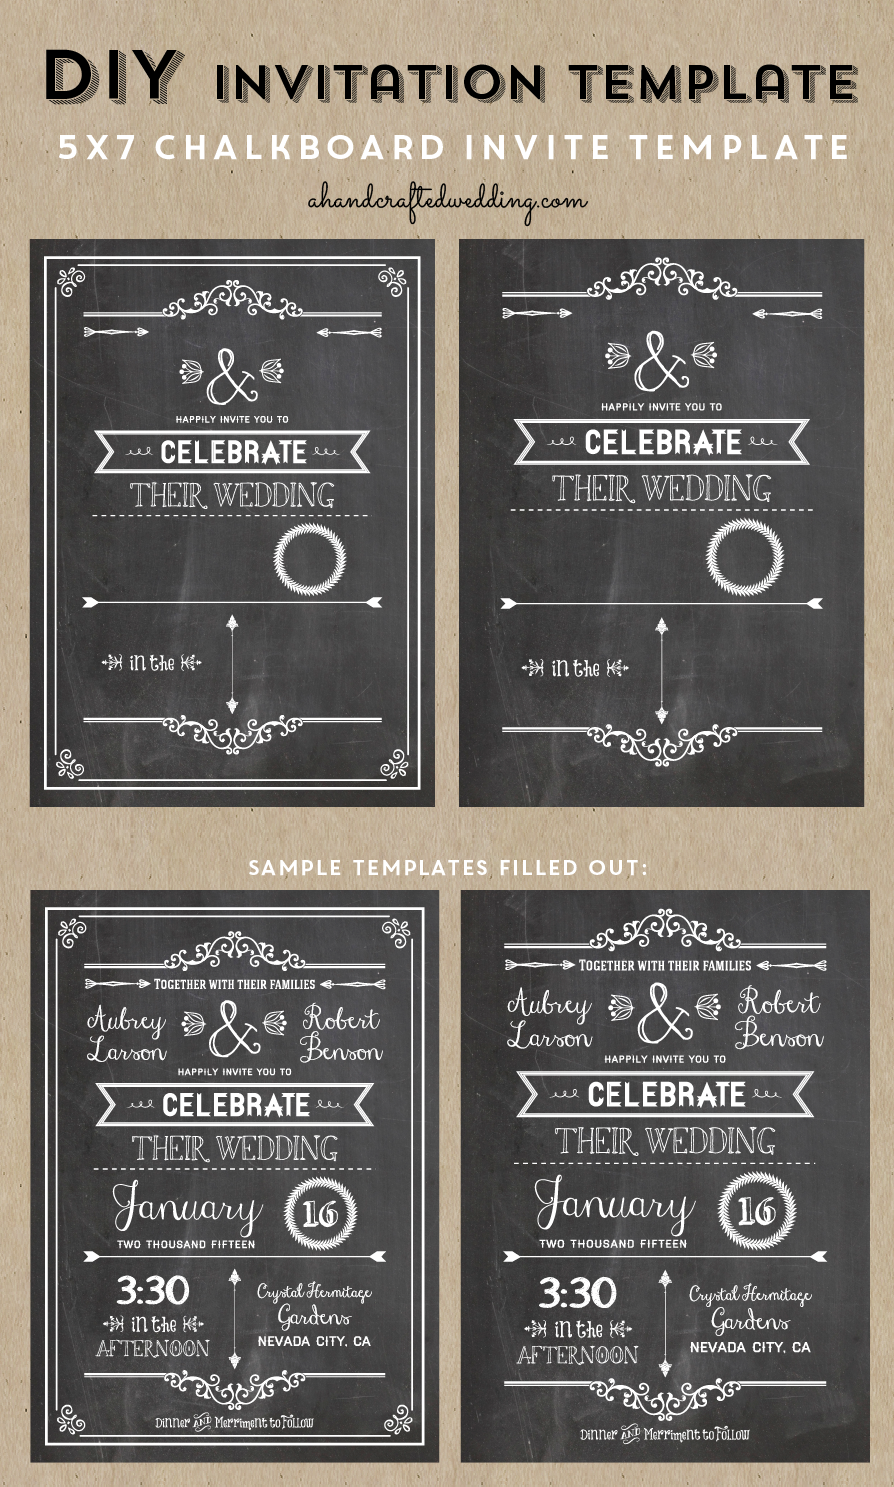 chalkboard invitation template Check out this Printable DIY Chalkboard Wedding Invitation Template ...